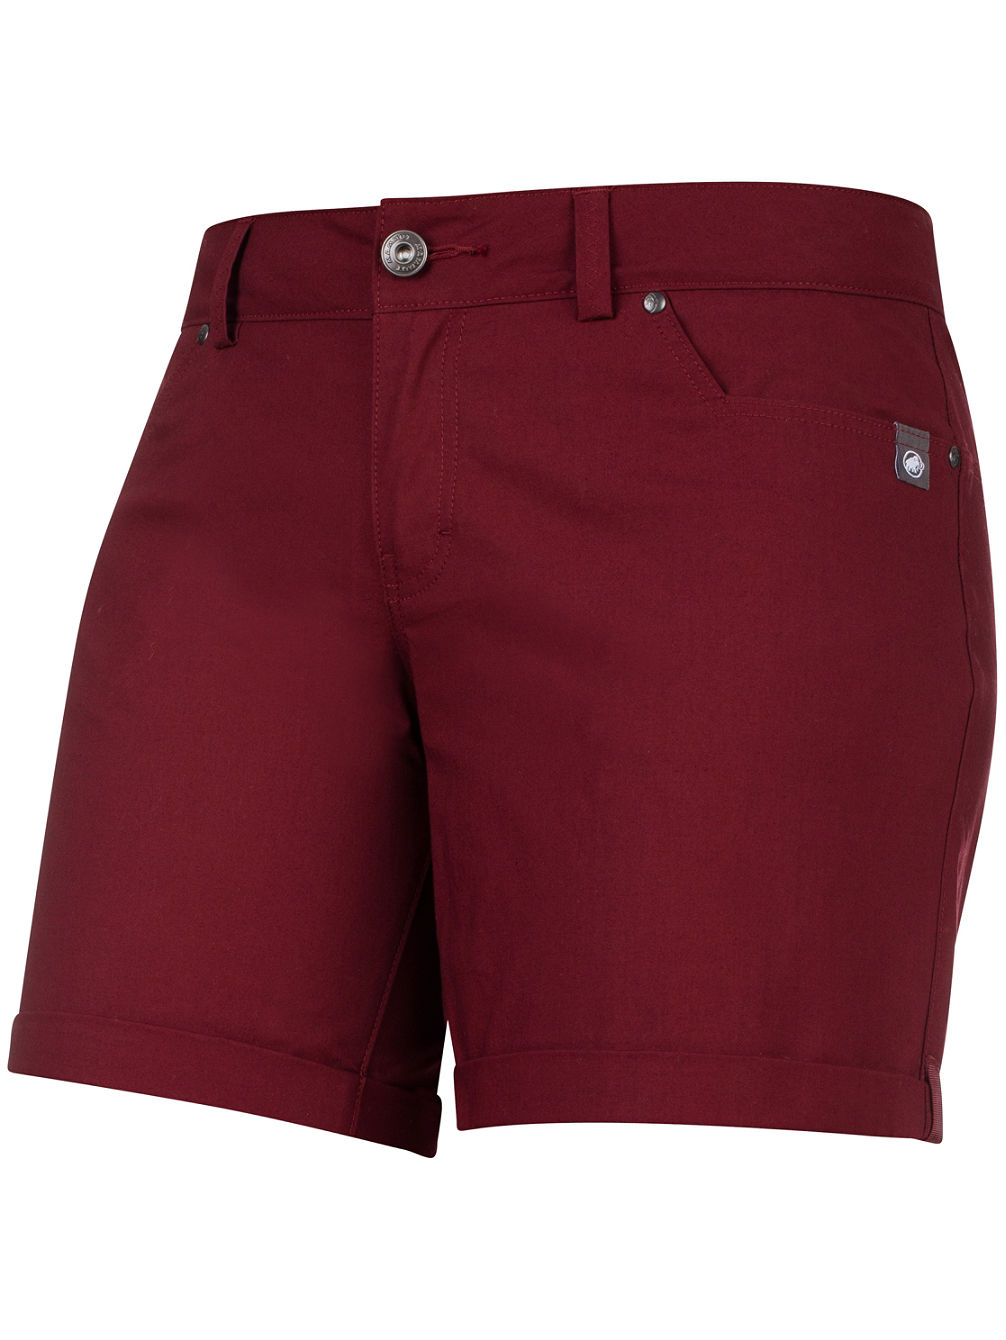 Roseg Short Outdoorhose